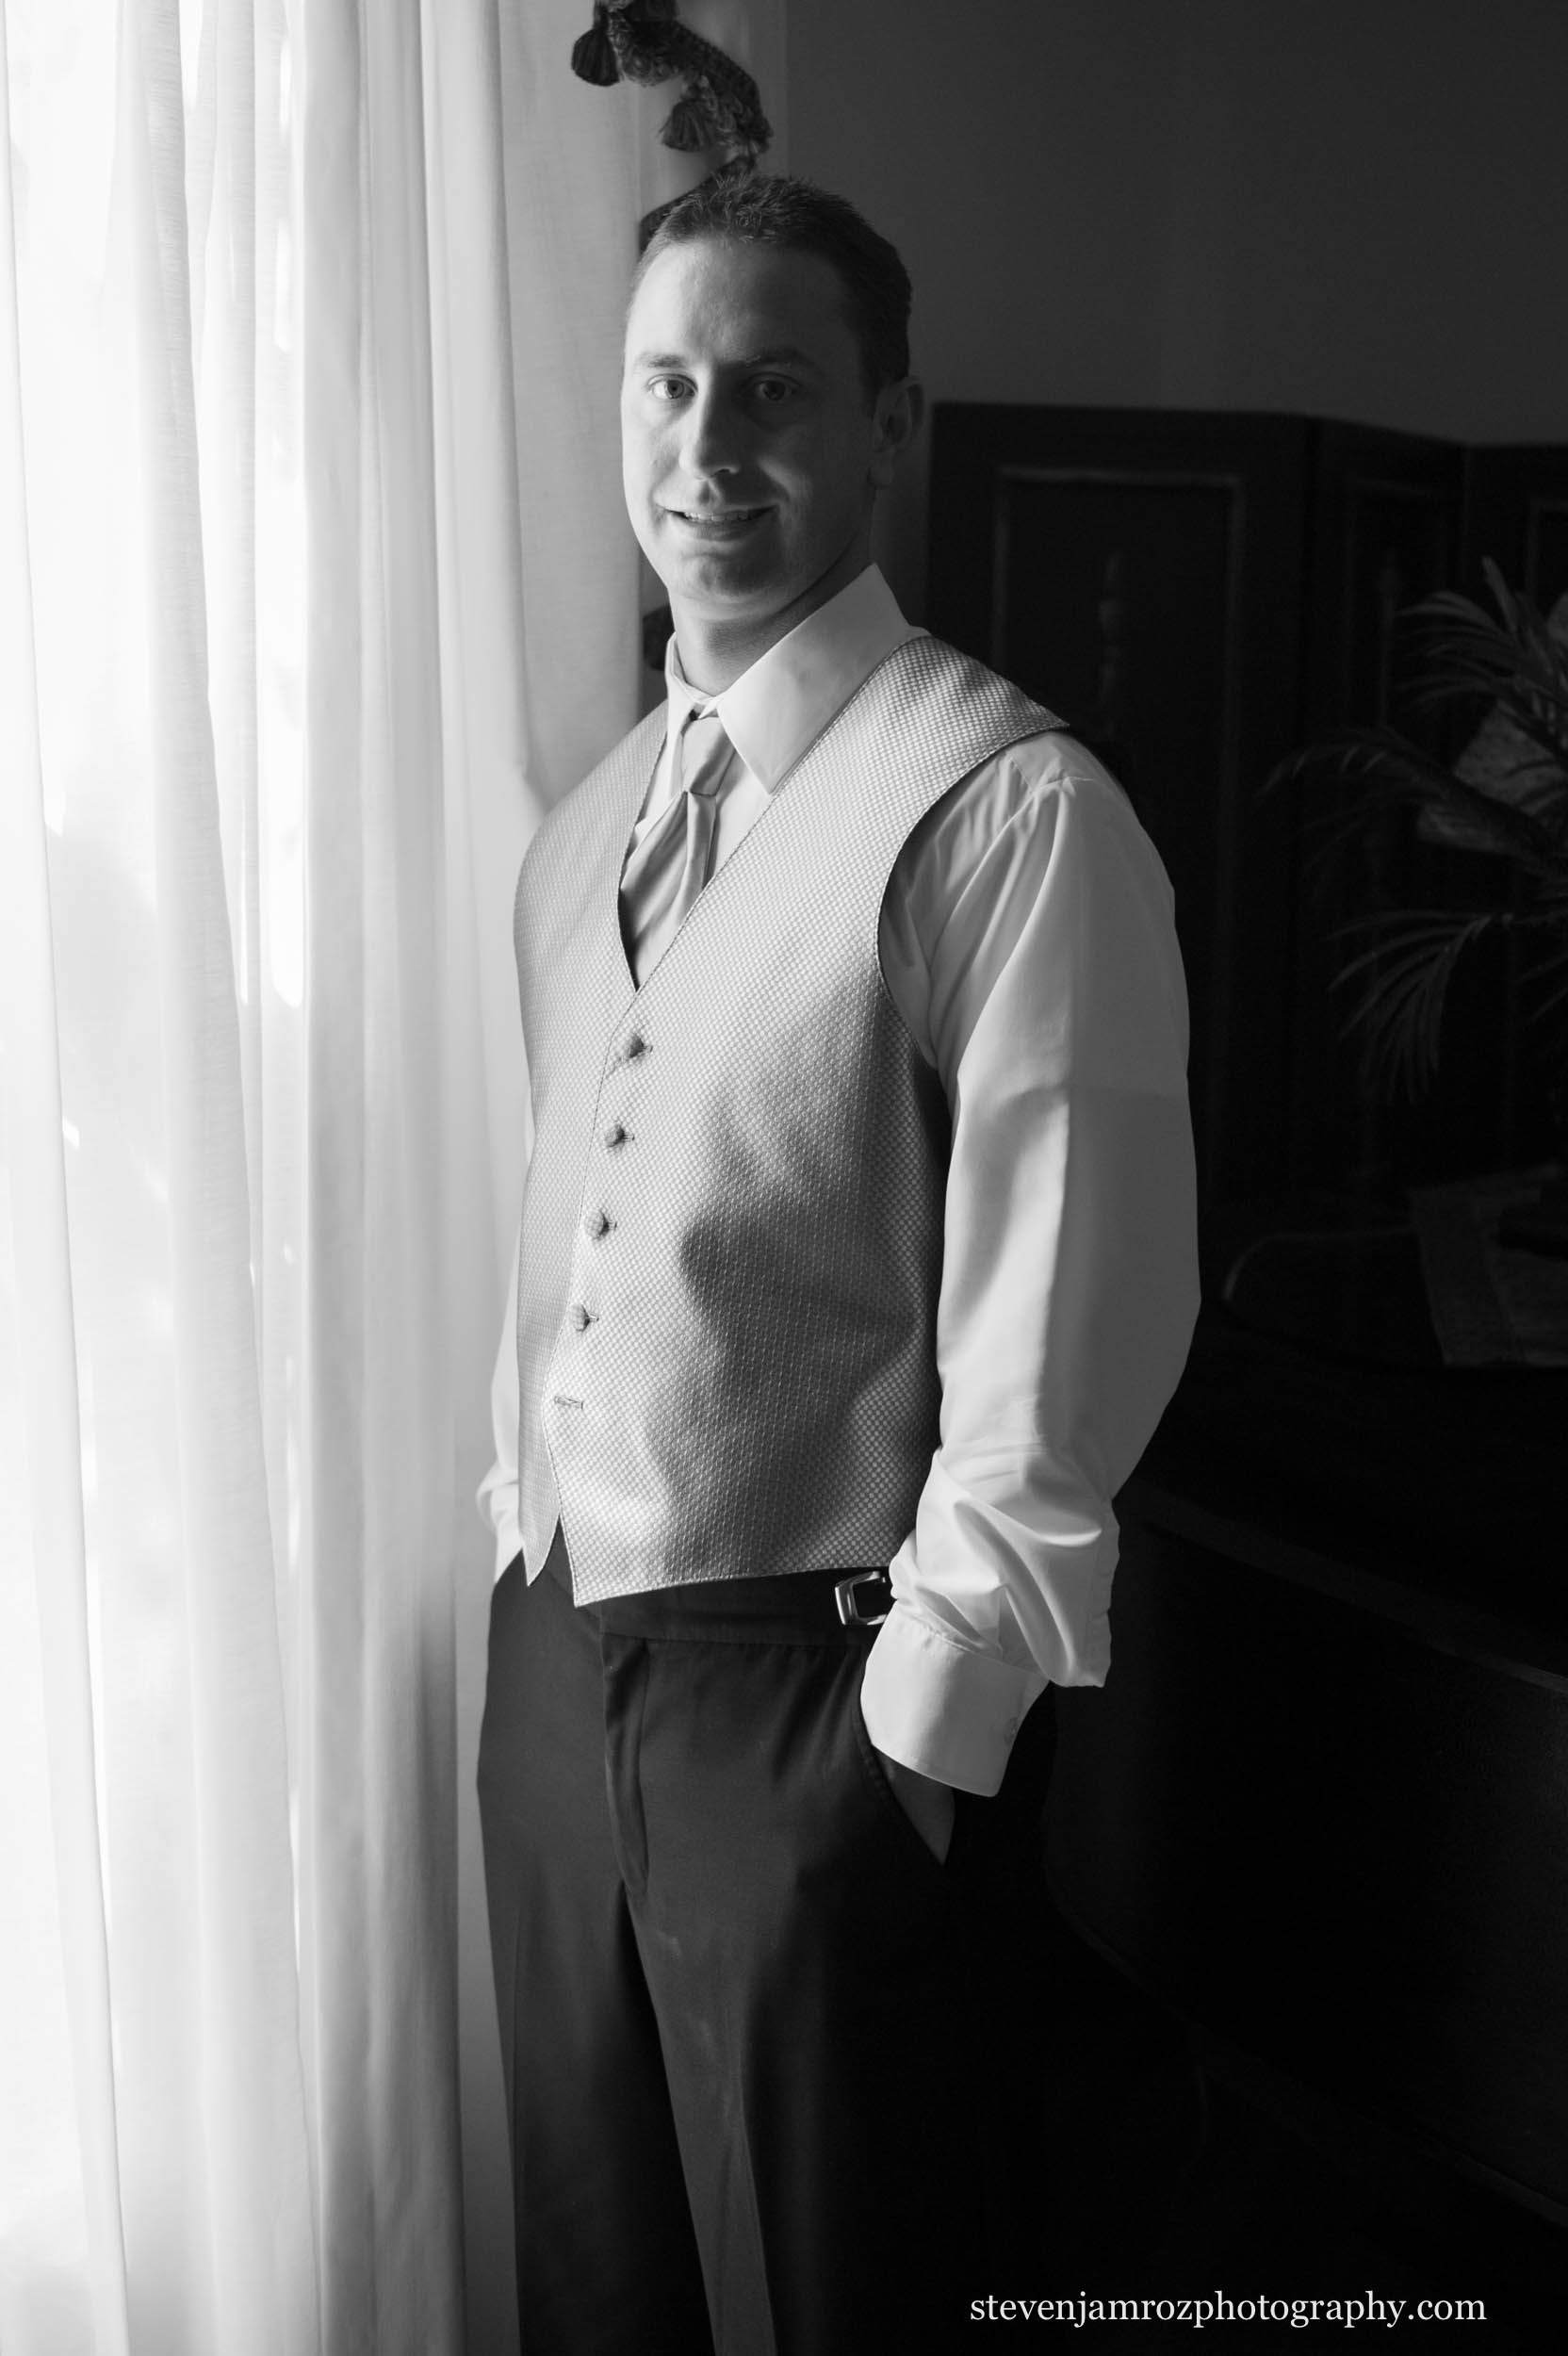 window-groom-portrait-steven-jamroz-photography-0165.jpg